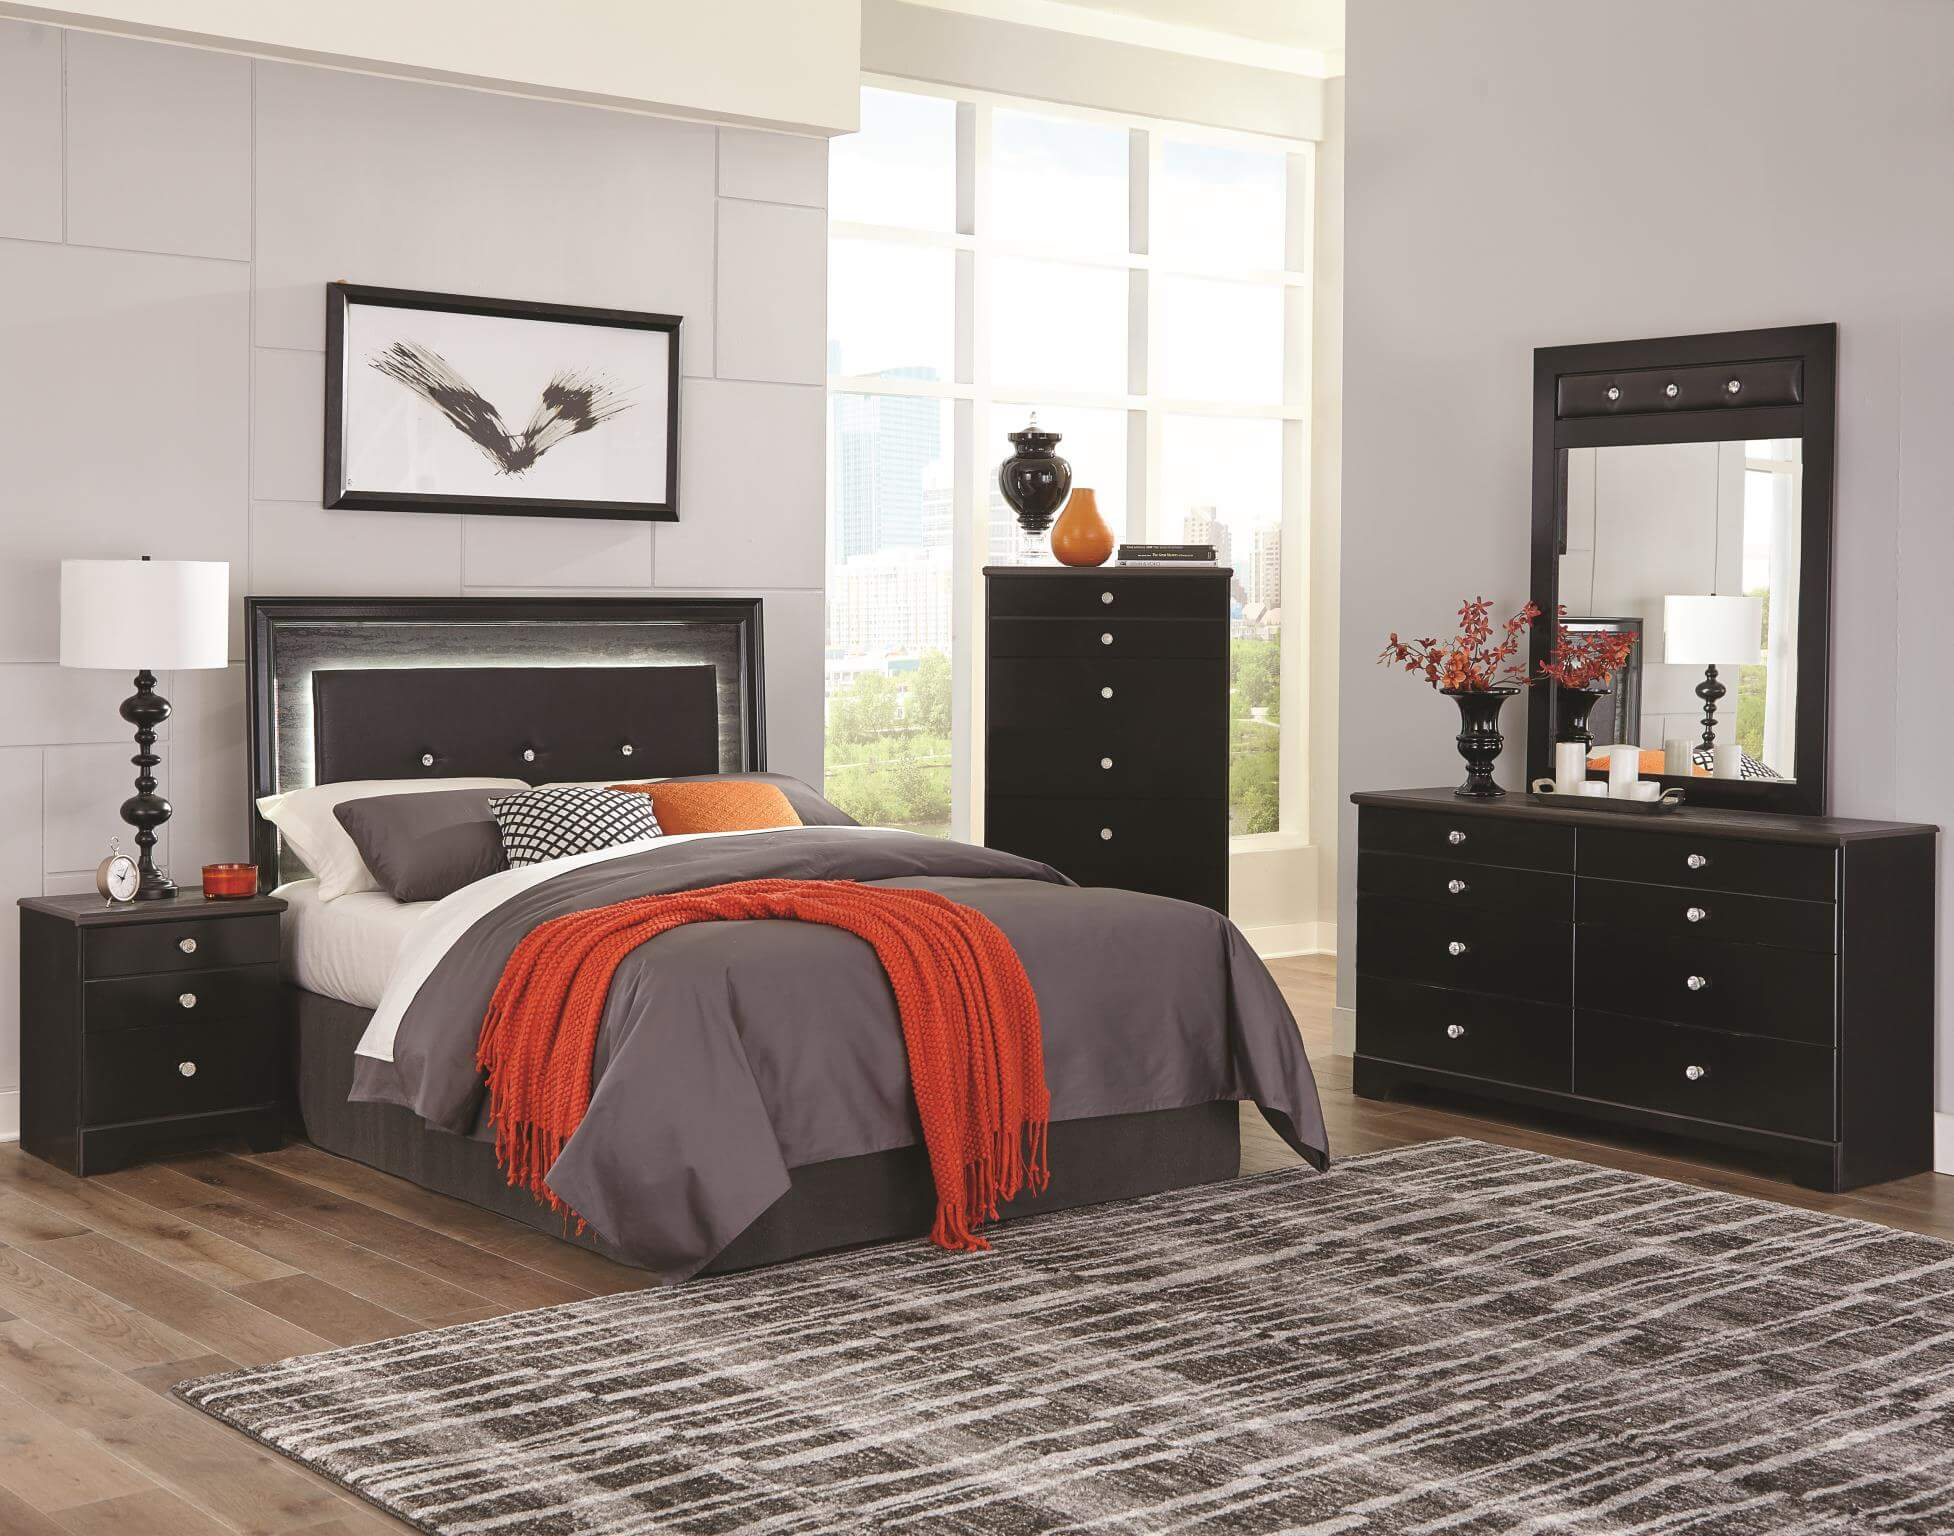 Kith Furniture Kaylynn 4 Piece Queen Bedroom Set with LED Lighted Headboard